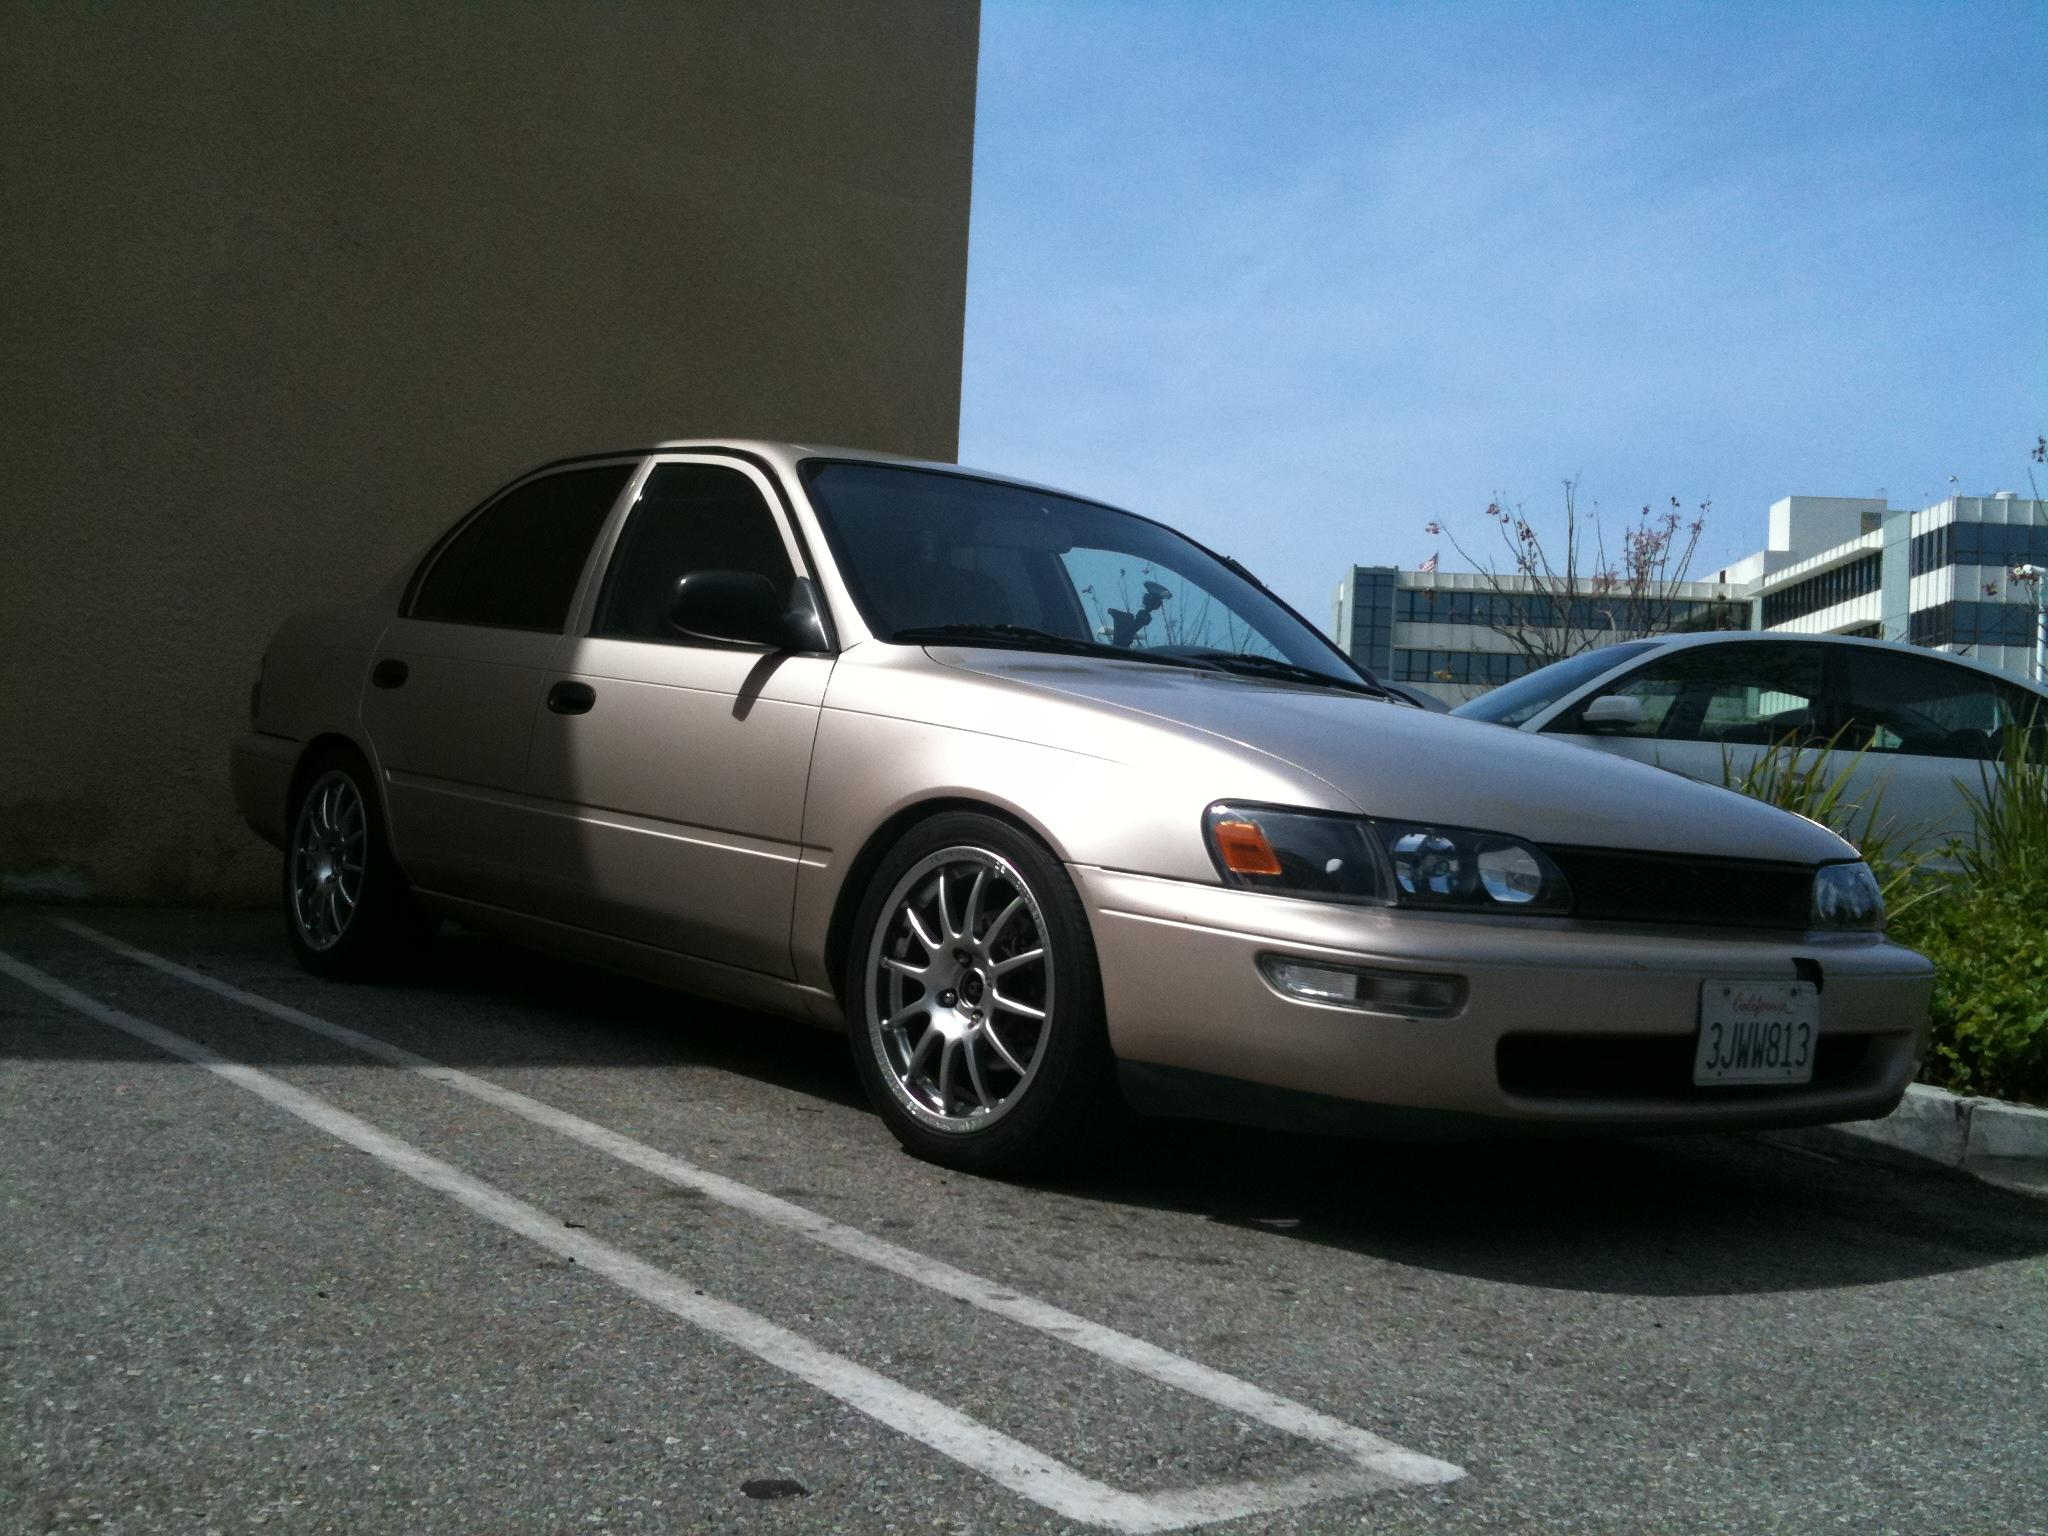 Mercedes Of Austin >> levin_pilot 1994 Toyota CorollaDX Sedan 4D Specs, Photos ...